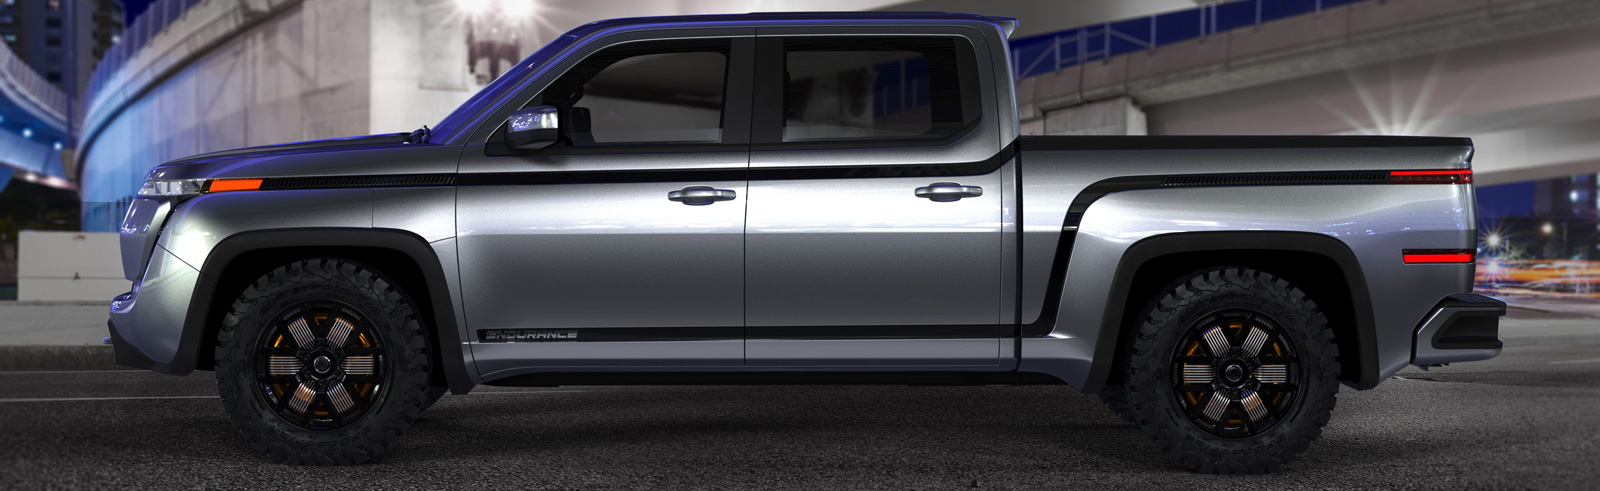 A full-scale Lordstown Endurance all-electric truck will be unveiled towards the end of June